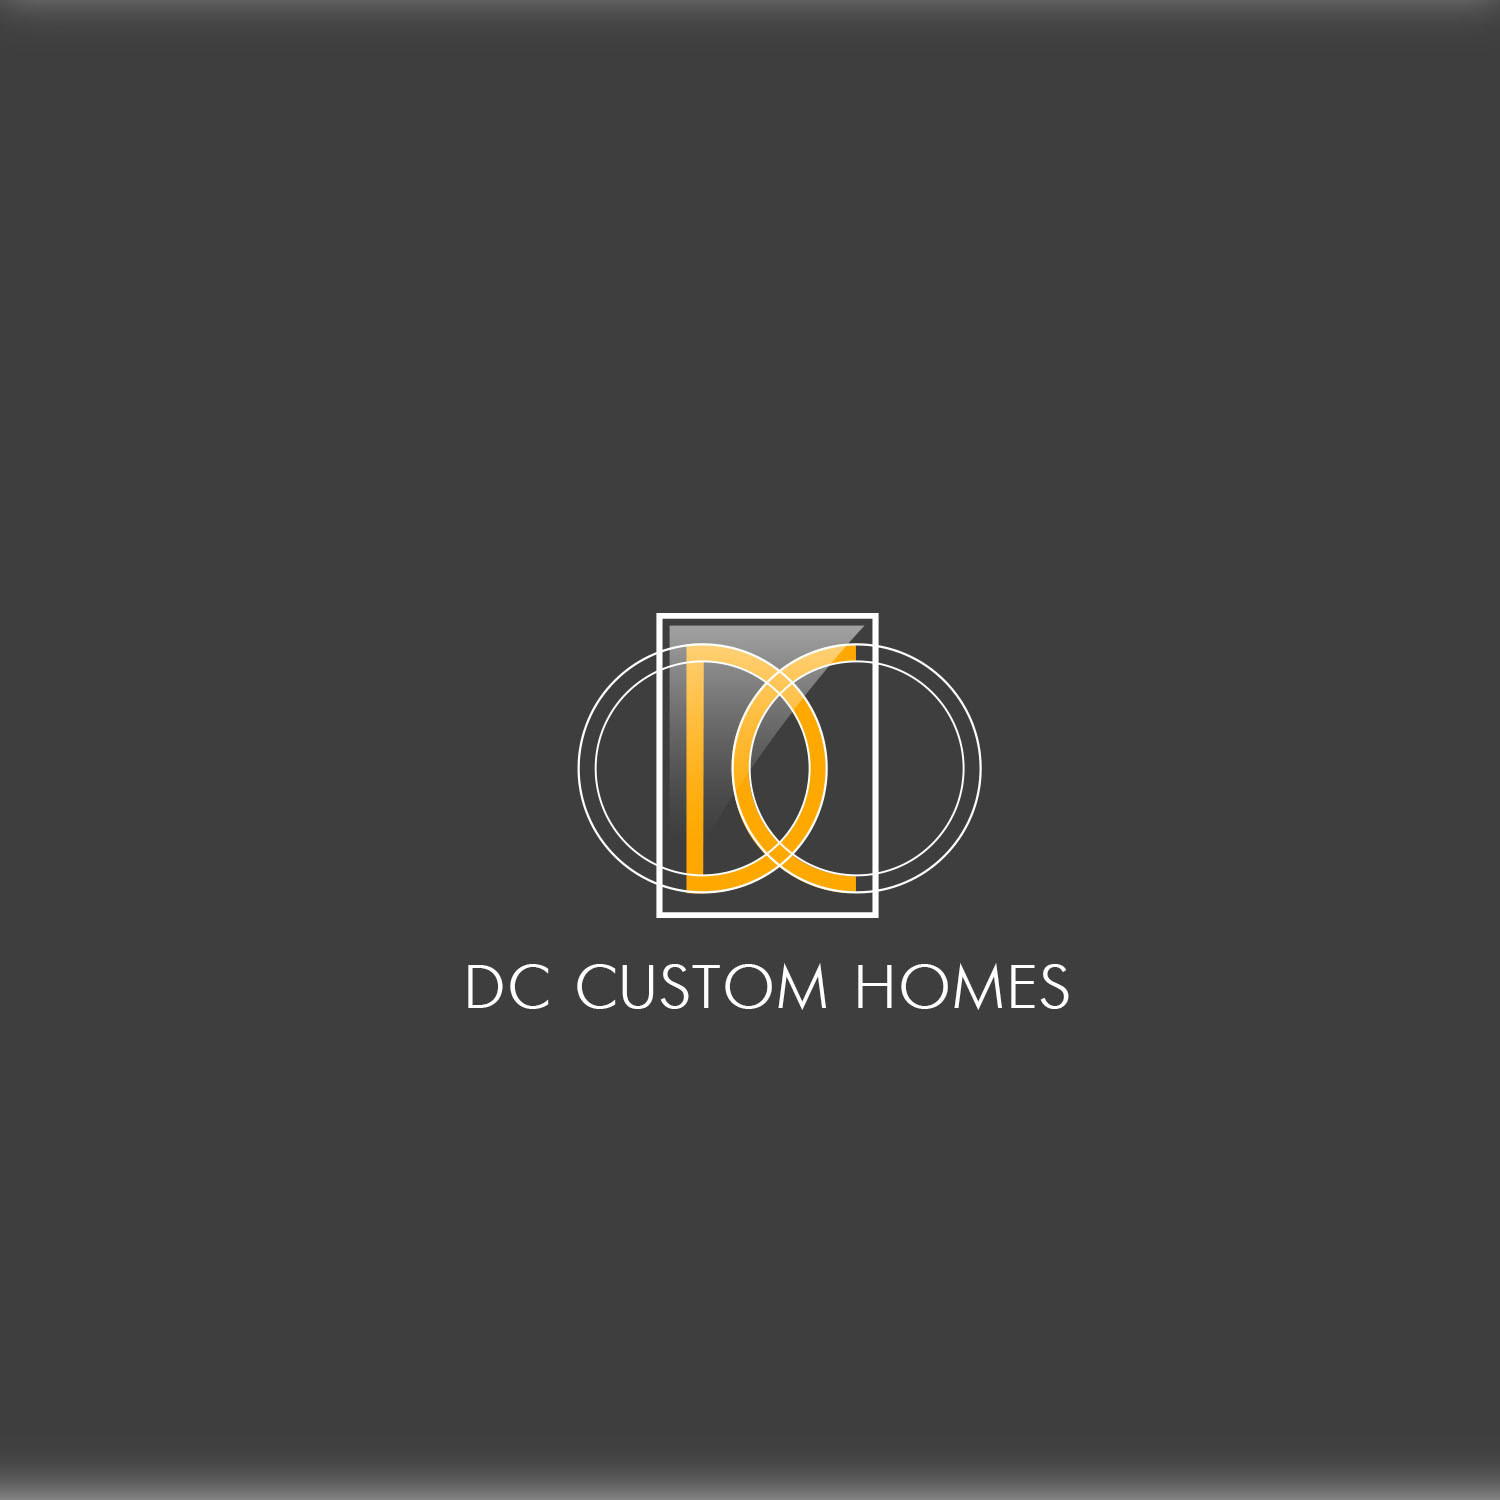 Logo Design by Private User - Entry No. 263 in the Logo Design Contest Creative Logo Design for DC Custom Homes.